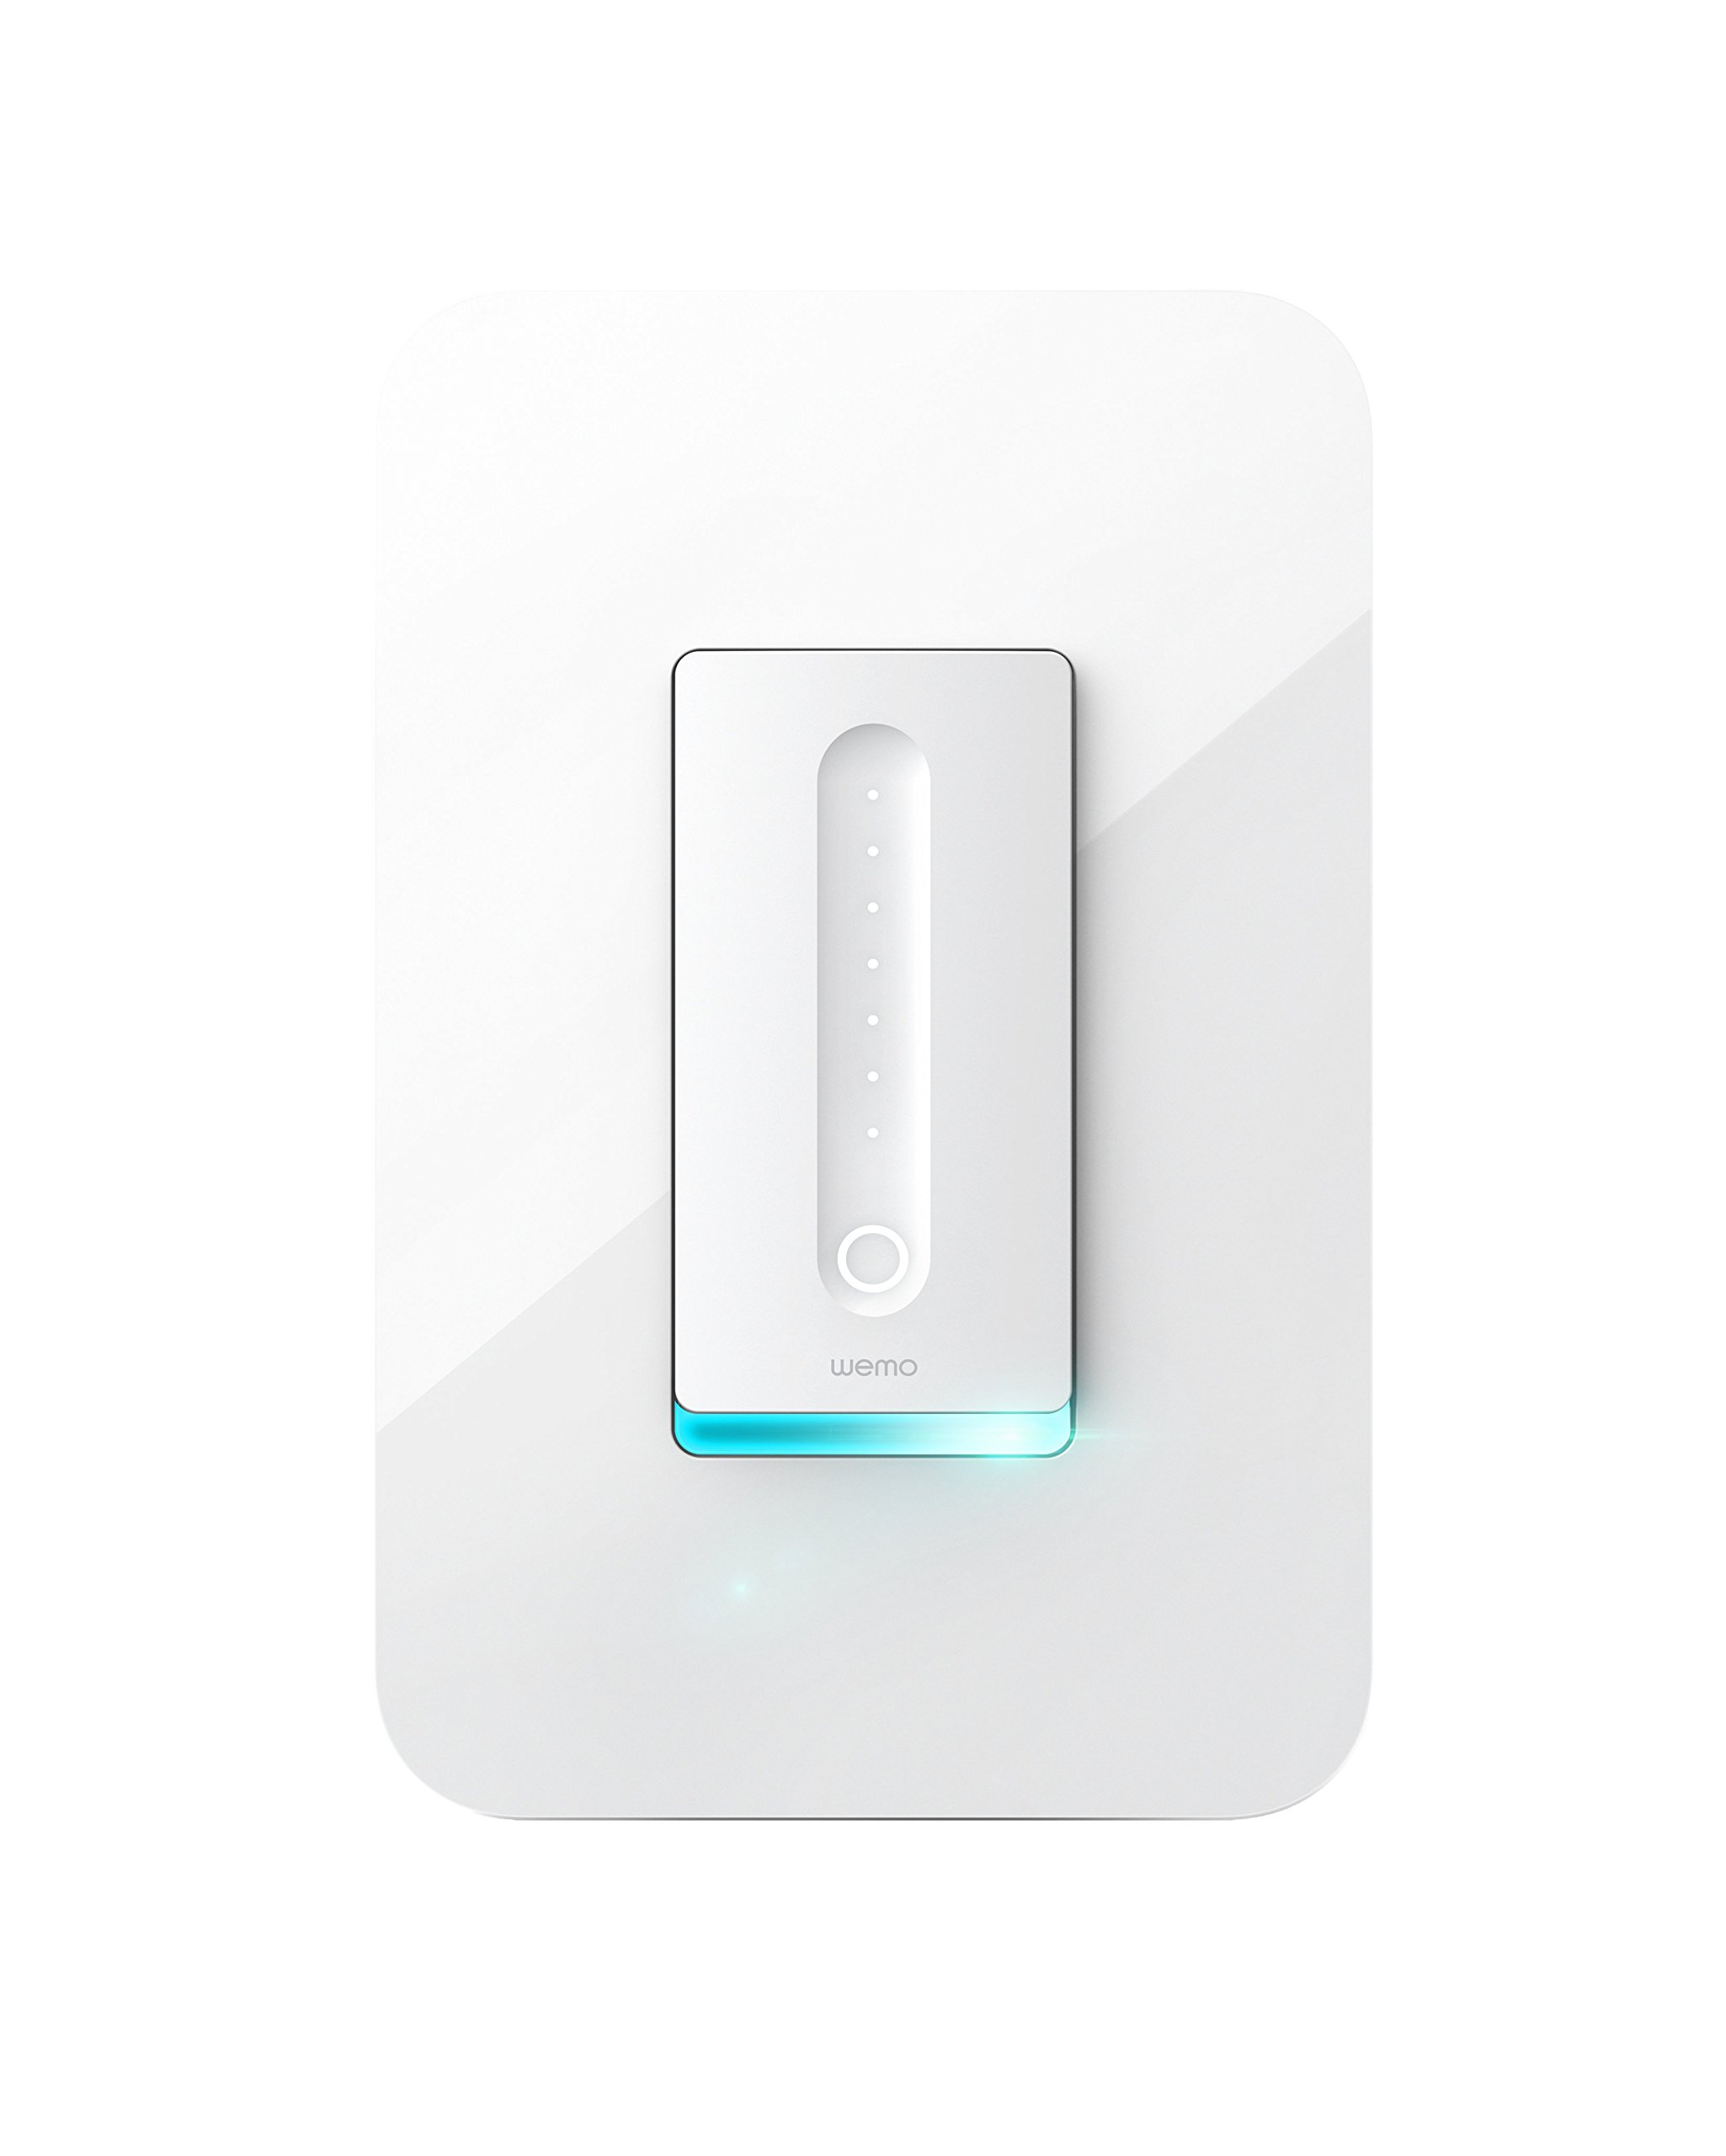 Wemo Dimmer WiFi Light Switch, Works with Alexa and the Google Assistant